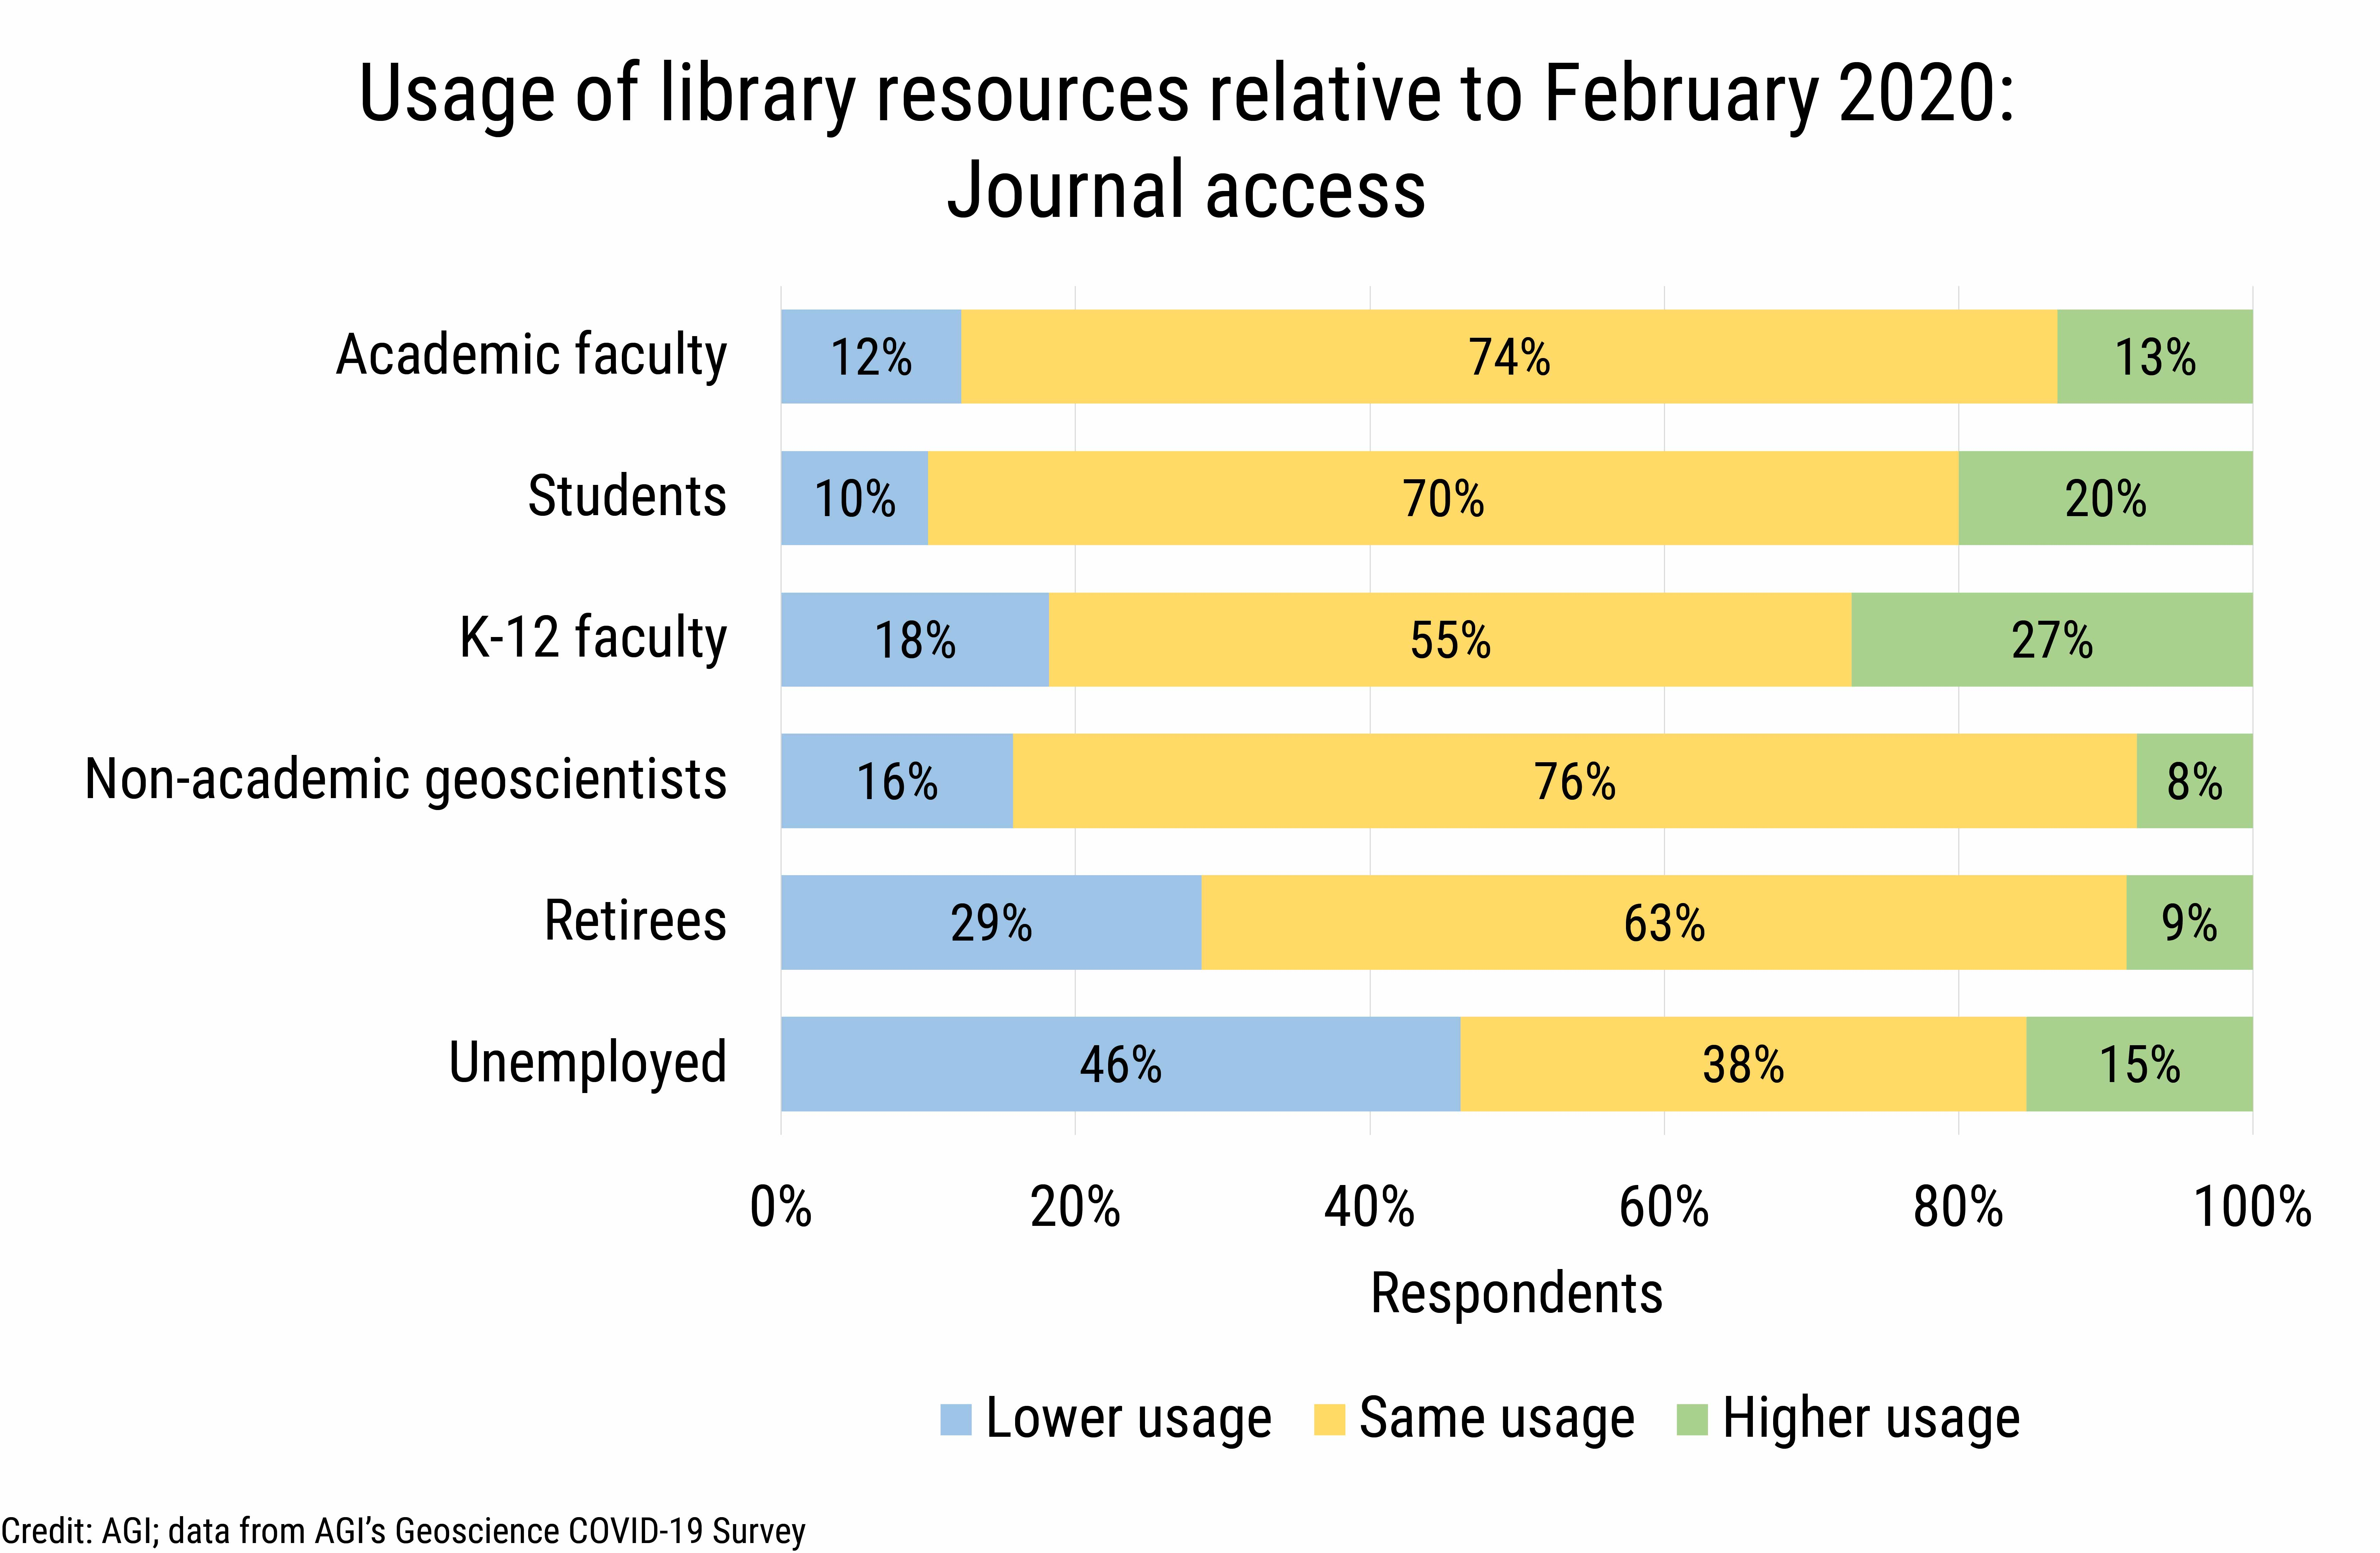 DB_2020-026 chart 03: Library resource usage by cohort: journal access (Credit: AGI; data from AGI's Geoscience COVID-19 Survey)